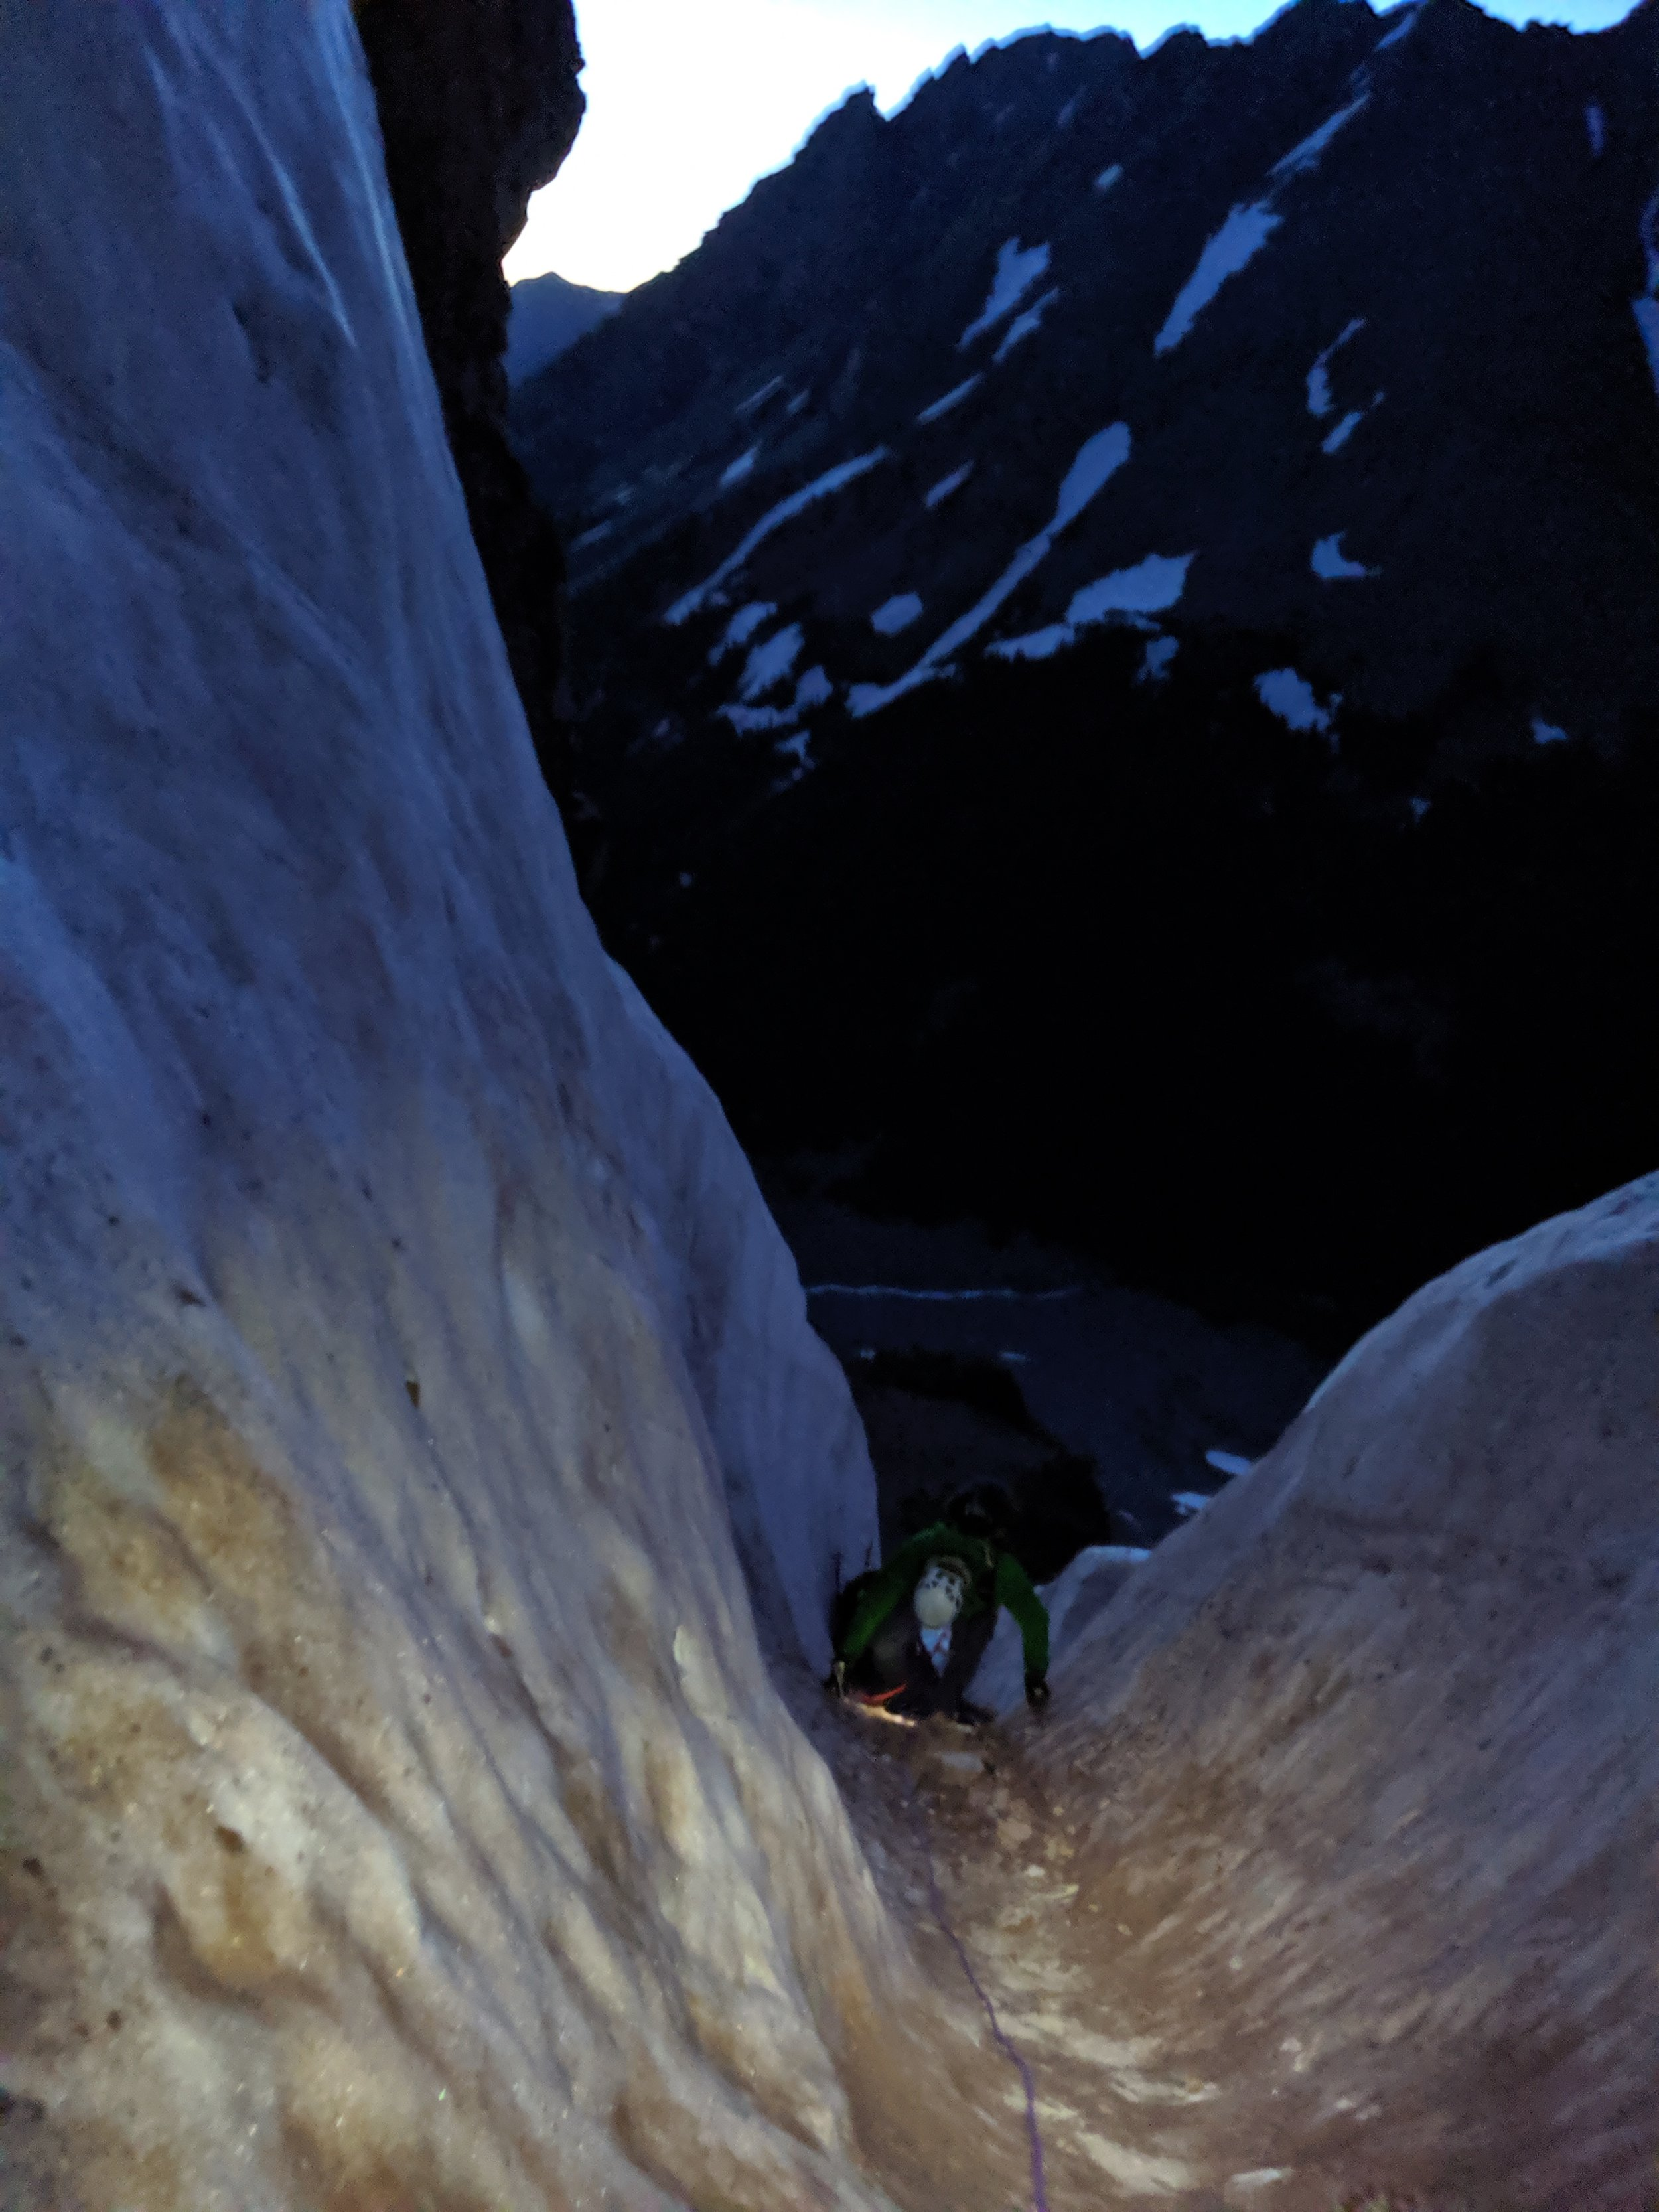 Just above the belay station